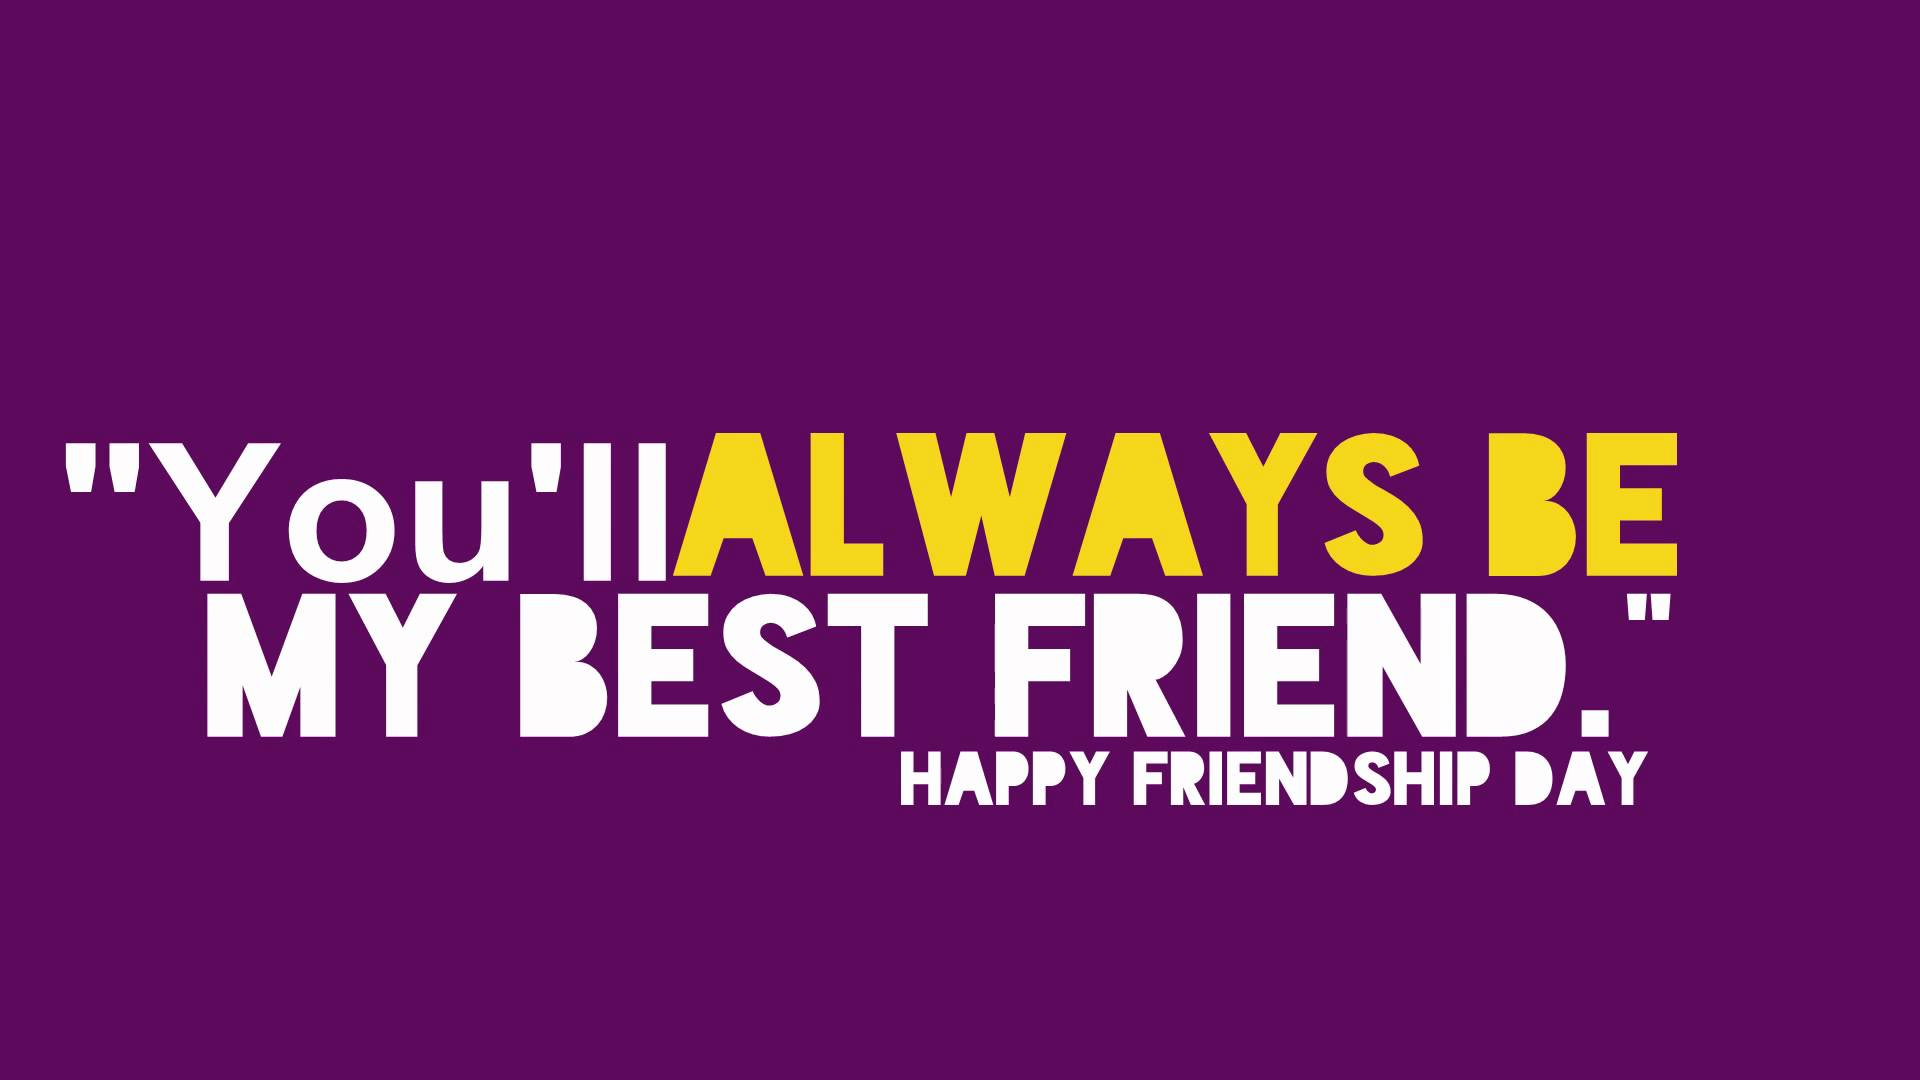 Friendship Day HD Images, Wallpaper, Pics, Photos [Free ...